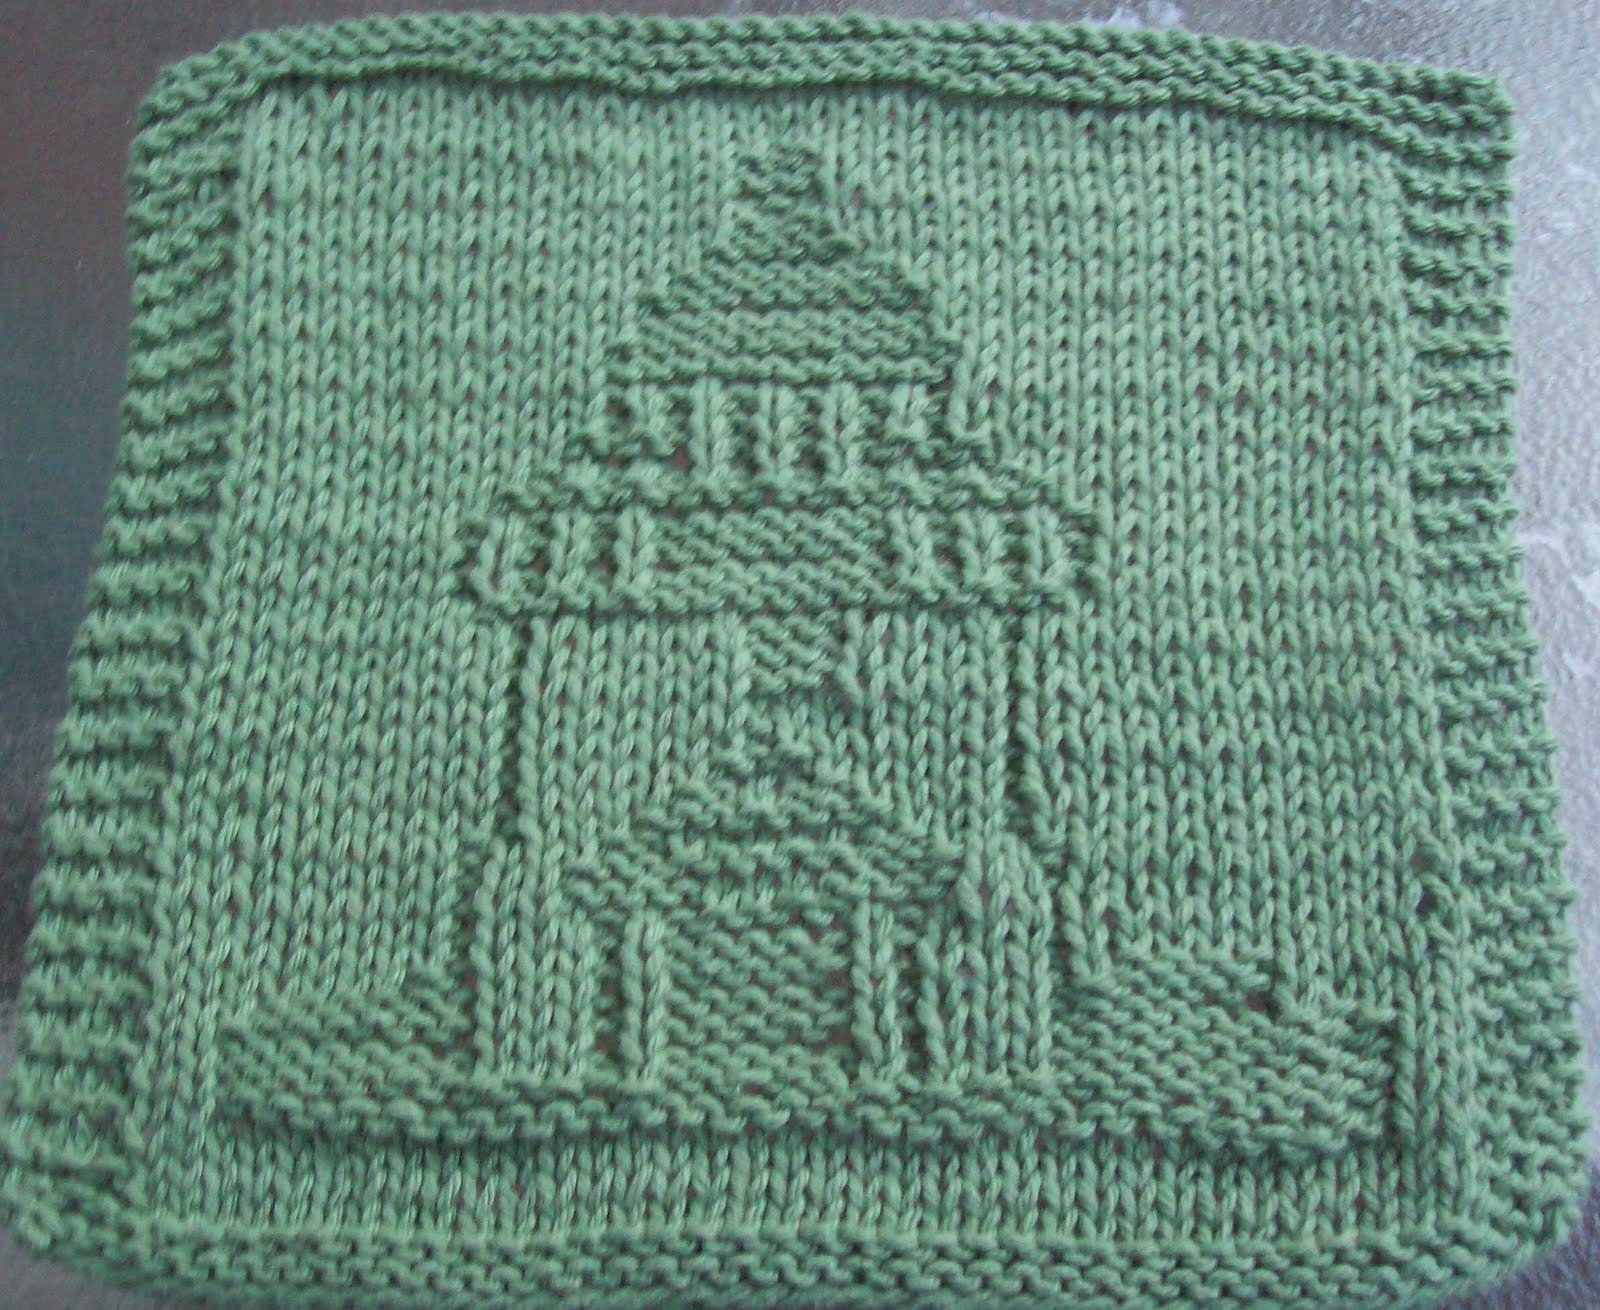 Dish Cloth Knitting Pattern : DigKnitty Designs: Lighthouse Too Knit Dishcloth Pattern